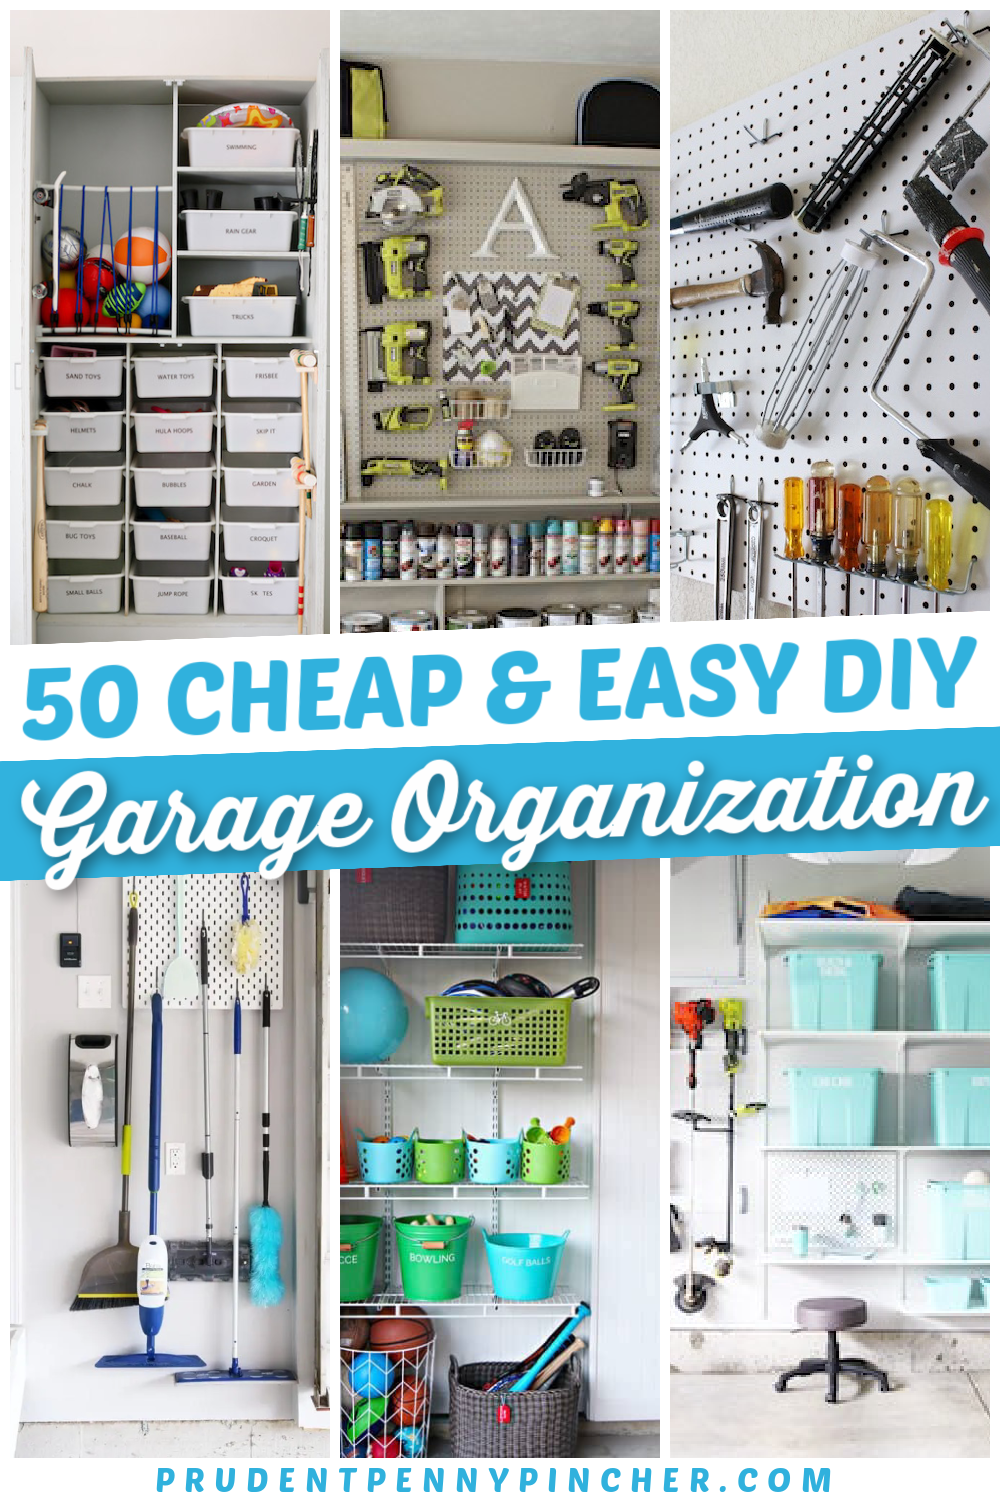 50 Cheap And Easy Garage Organization Ideas In 2021 Garage Organization Closet Organization Diy Garage Organization Tips